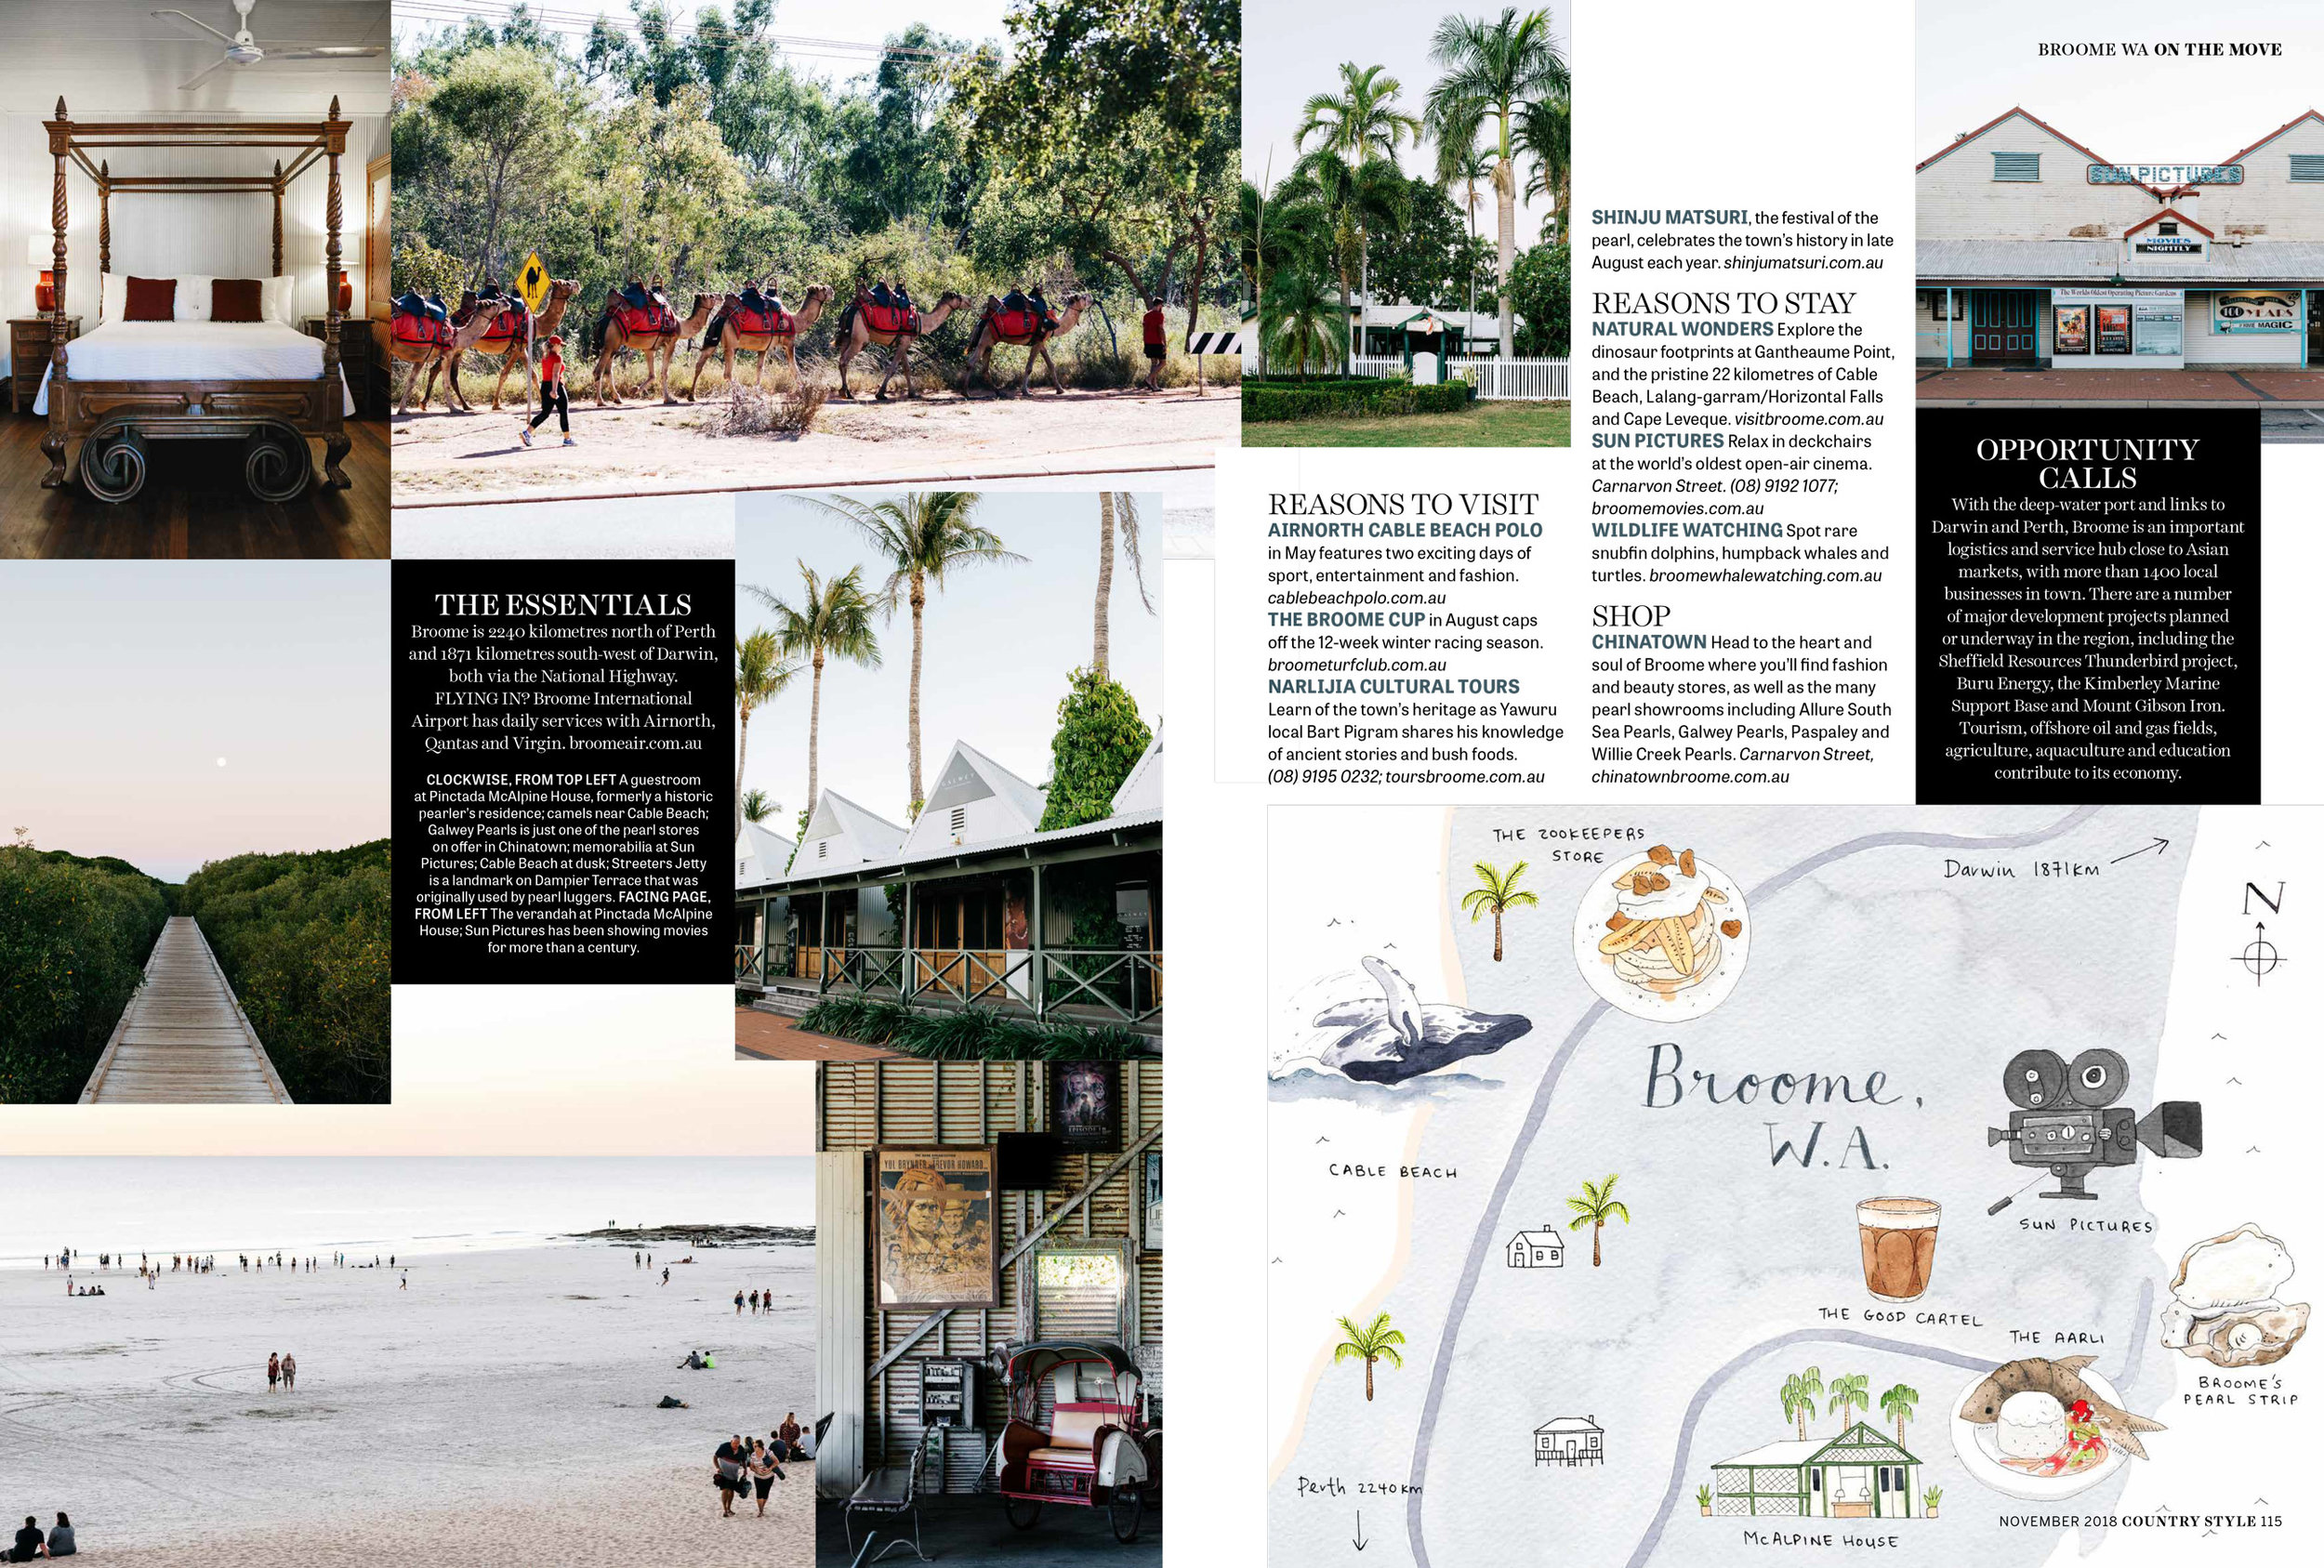 australian+country+style+November+2018+Broome+on+the+move+place+by+claire+mactaggart+2.jpg